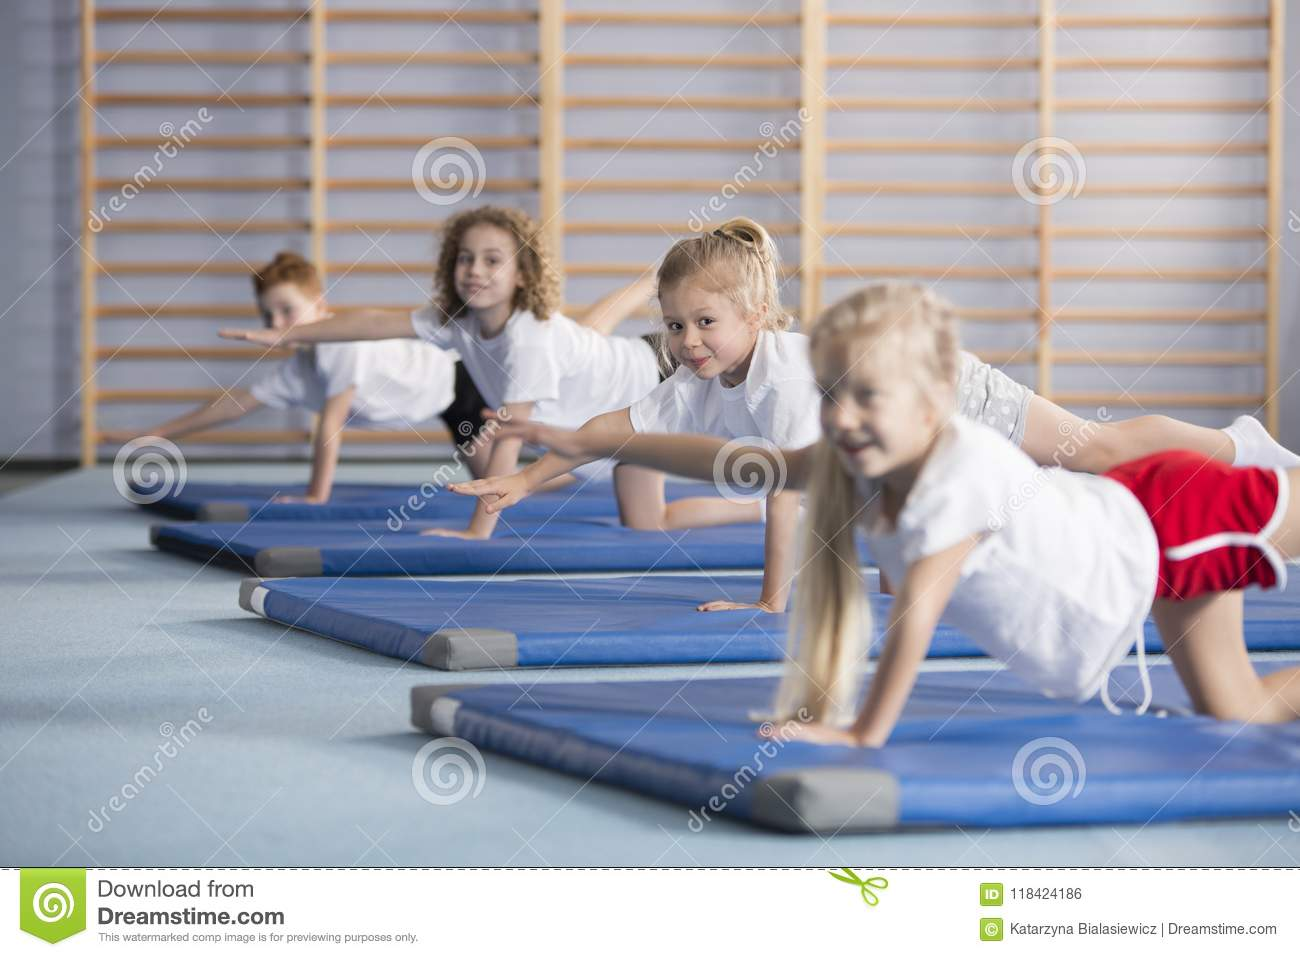 Kids improving coordination and balance at school